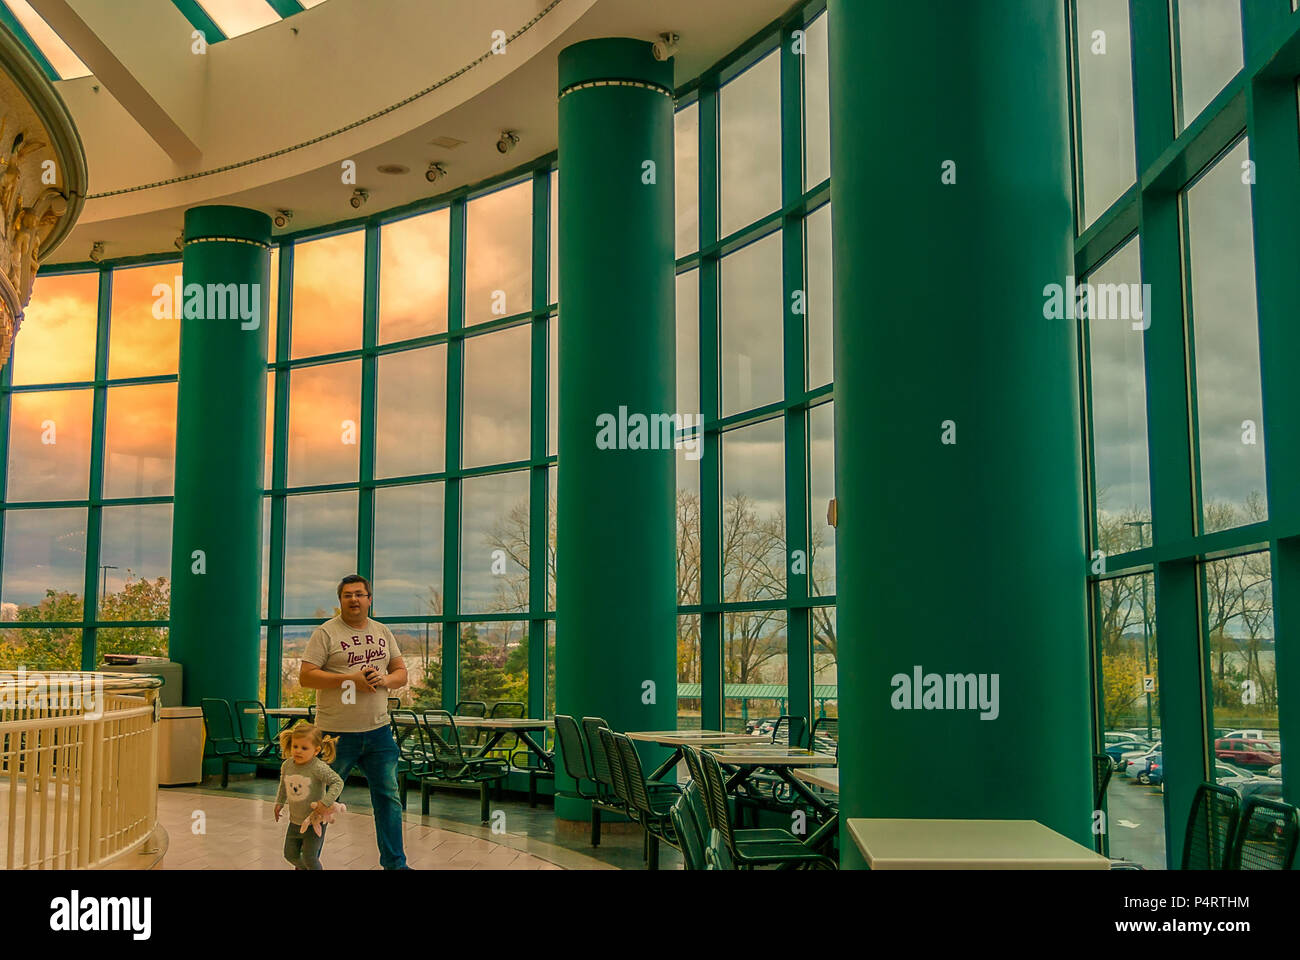 Syracuse Ny, NOV 6, 2017: A Side View of The Carousel Hall in Destiny USA Mall. - Stock Image